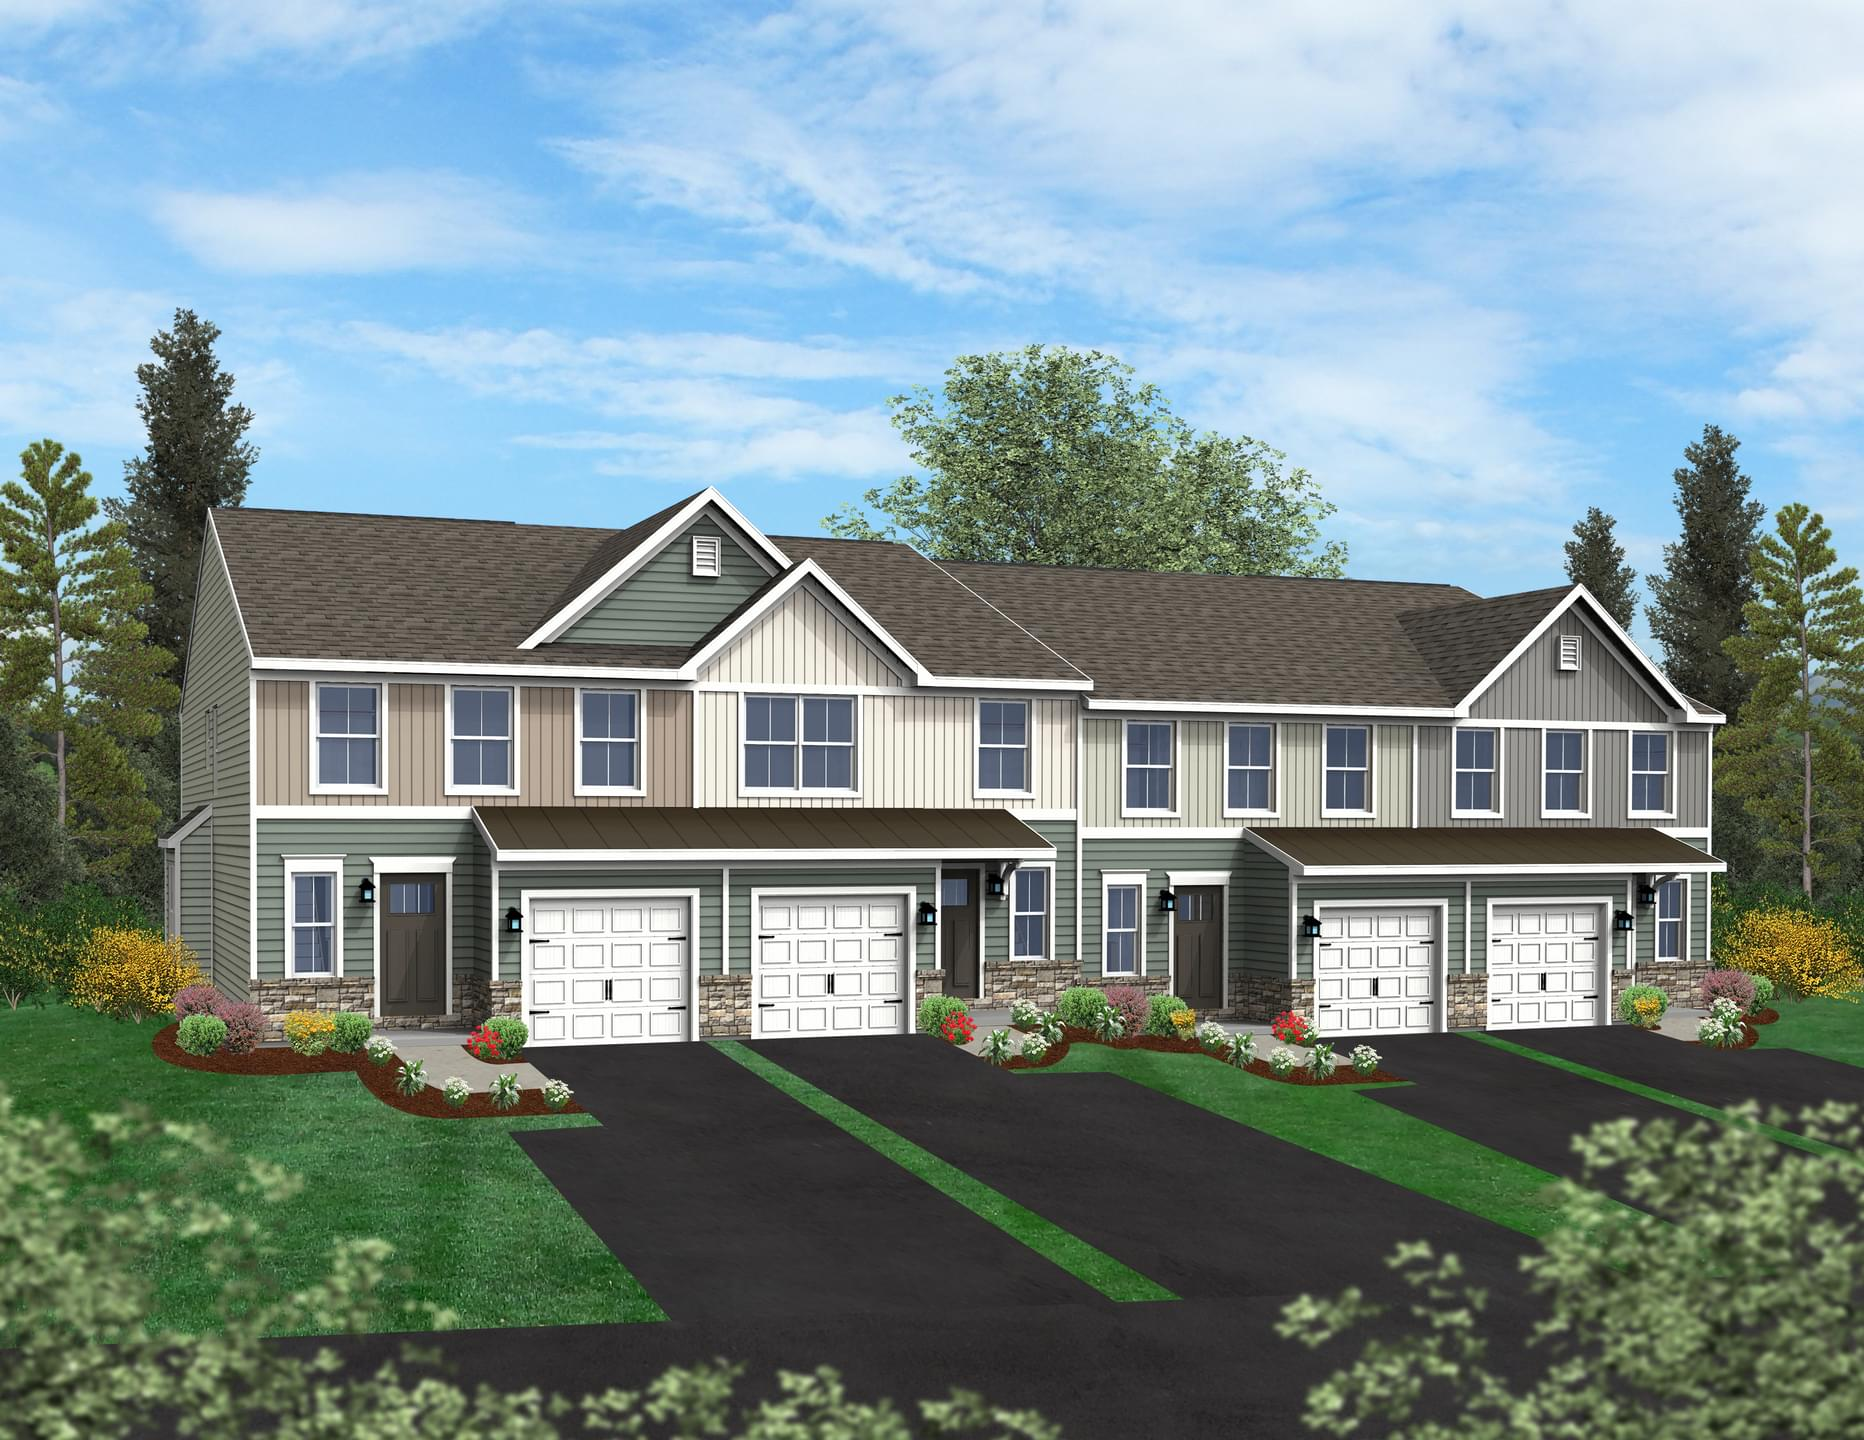 Berks Homes in Lot#1 104 Wildflower Ct., Elverson, PA 19520 PA